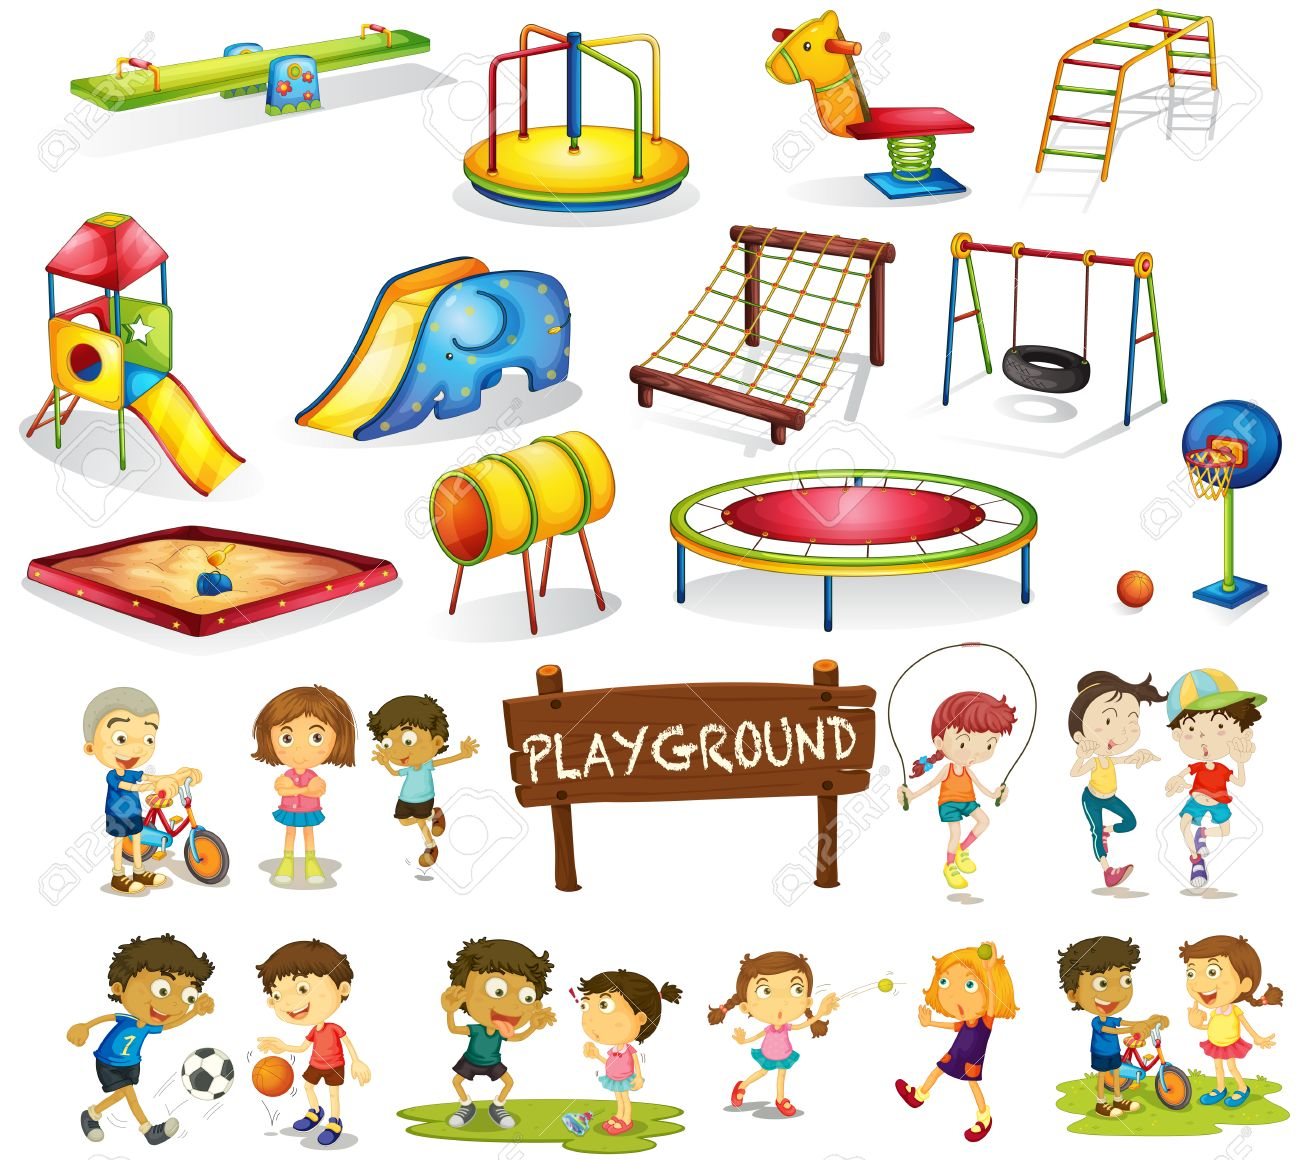 Playing garden drawing for kids - Playground Cartoon Children Playing And Playground Set Illustration